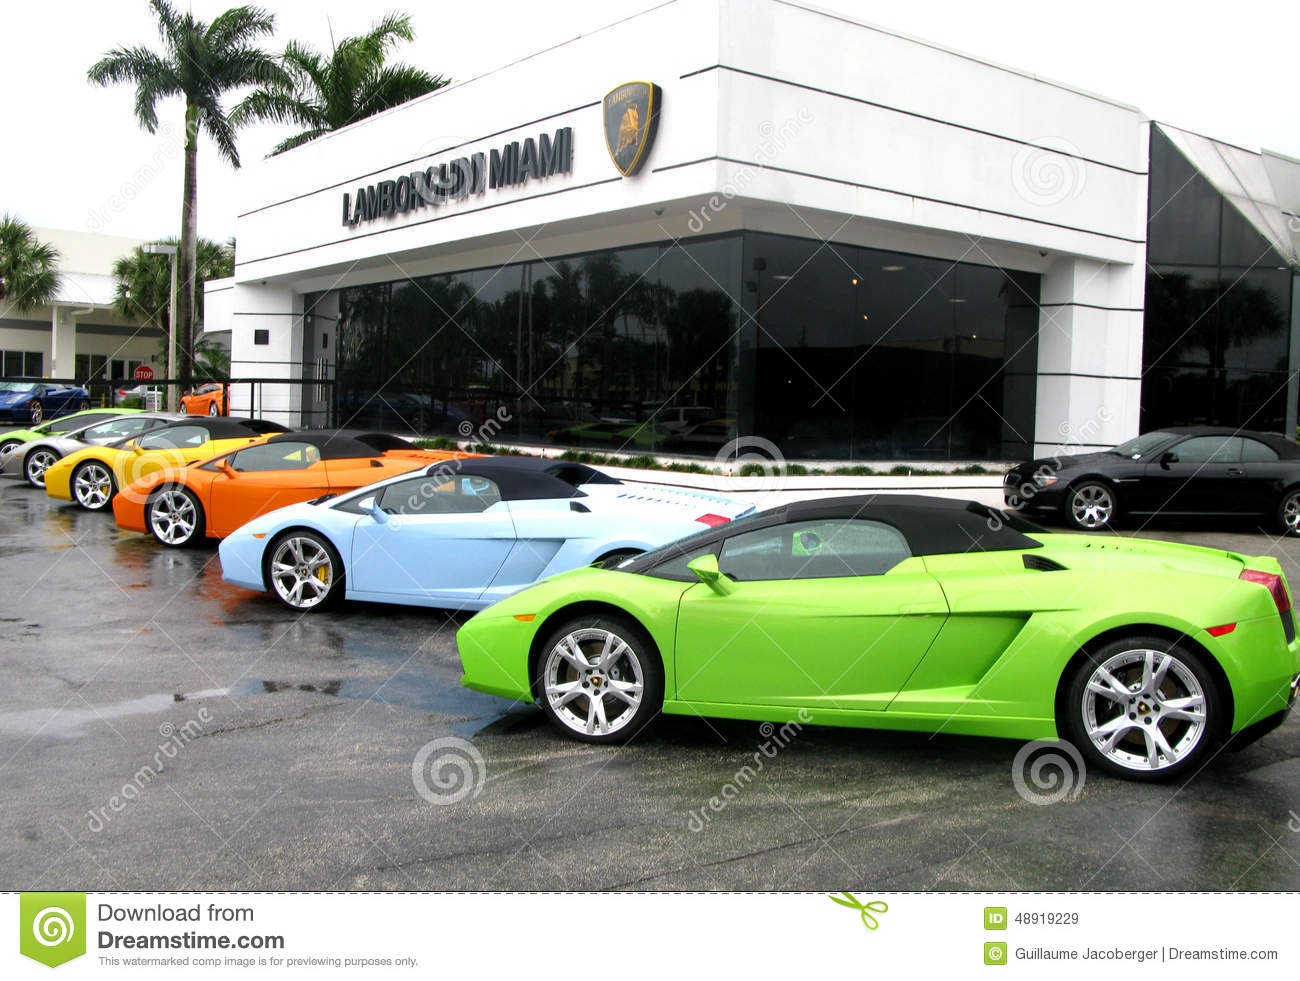 magasin de lamborghini miami image stock ditorial image 48919229. Black Bedroom Furniture Sets. Home Design Ideas